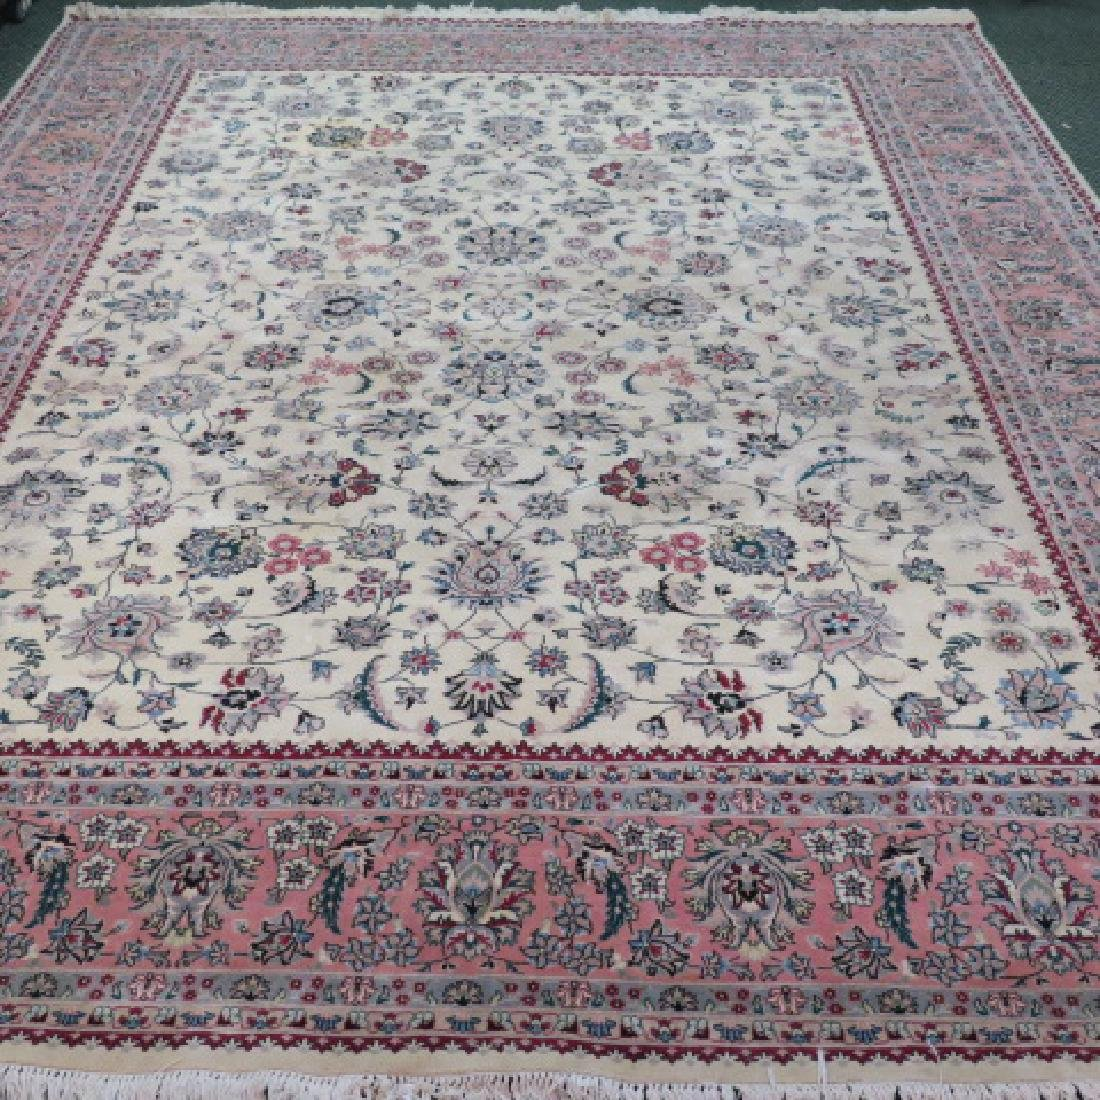 All Wool Safavieh Pakistani Power Loomed Rug: